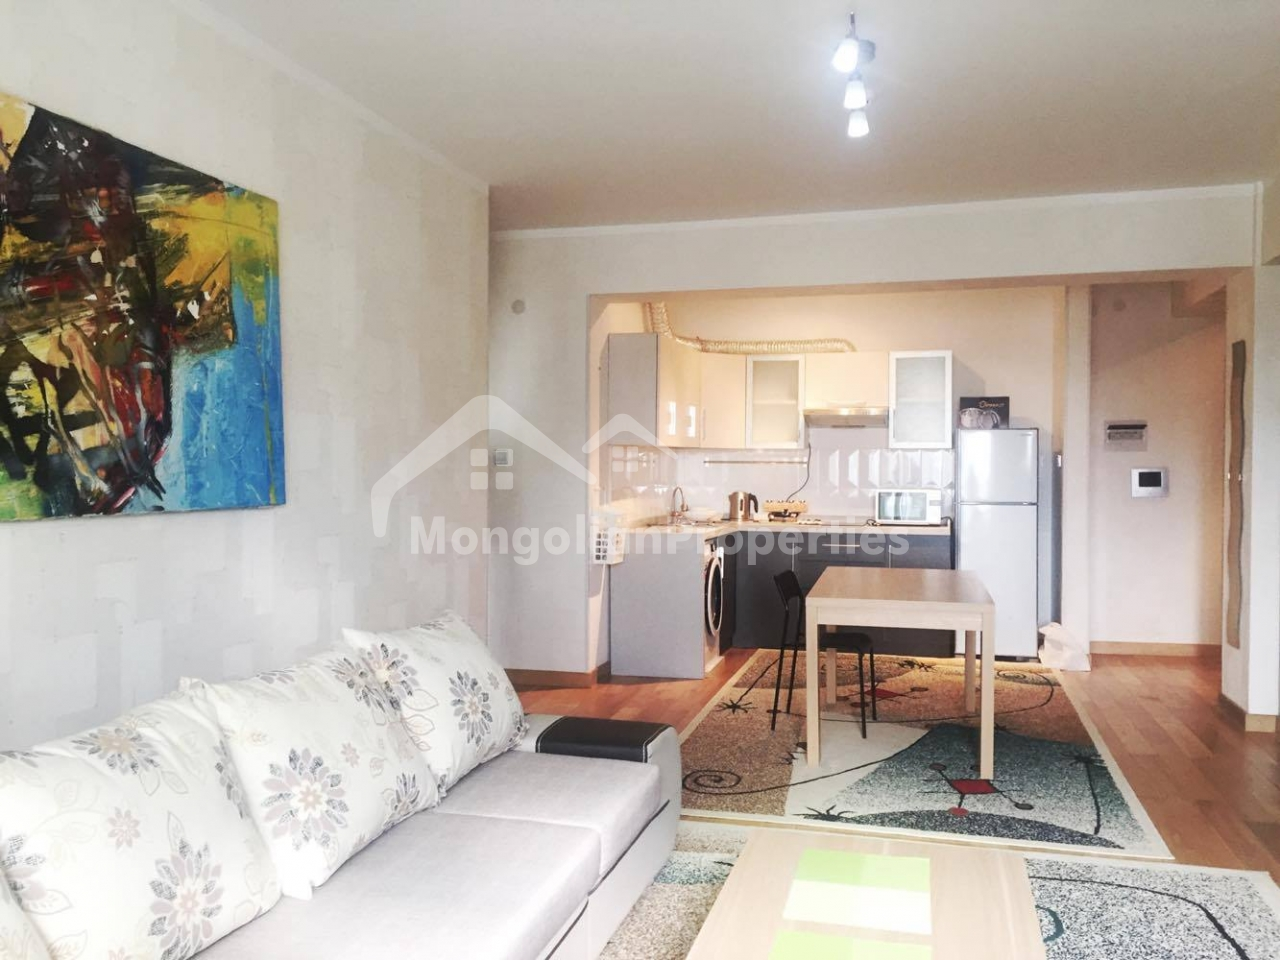 Near Shangrila, Cozy 1 bedroom apartment with brand new furniture